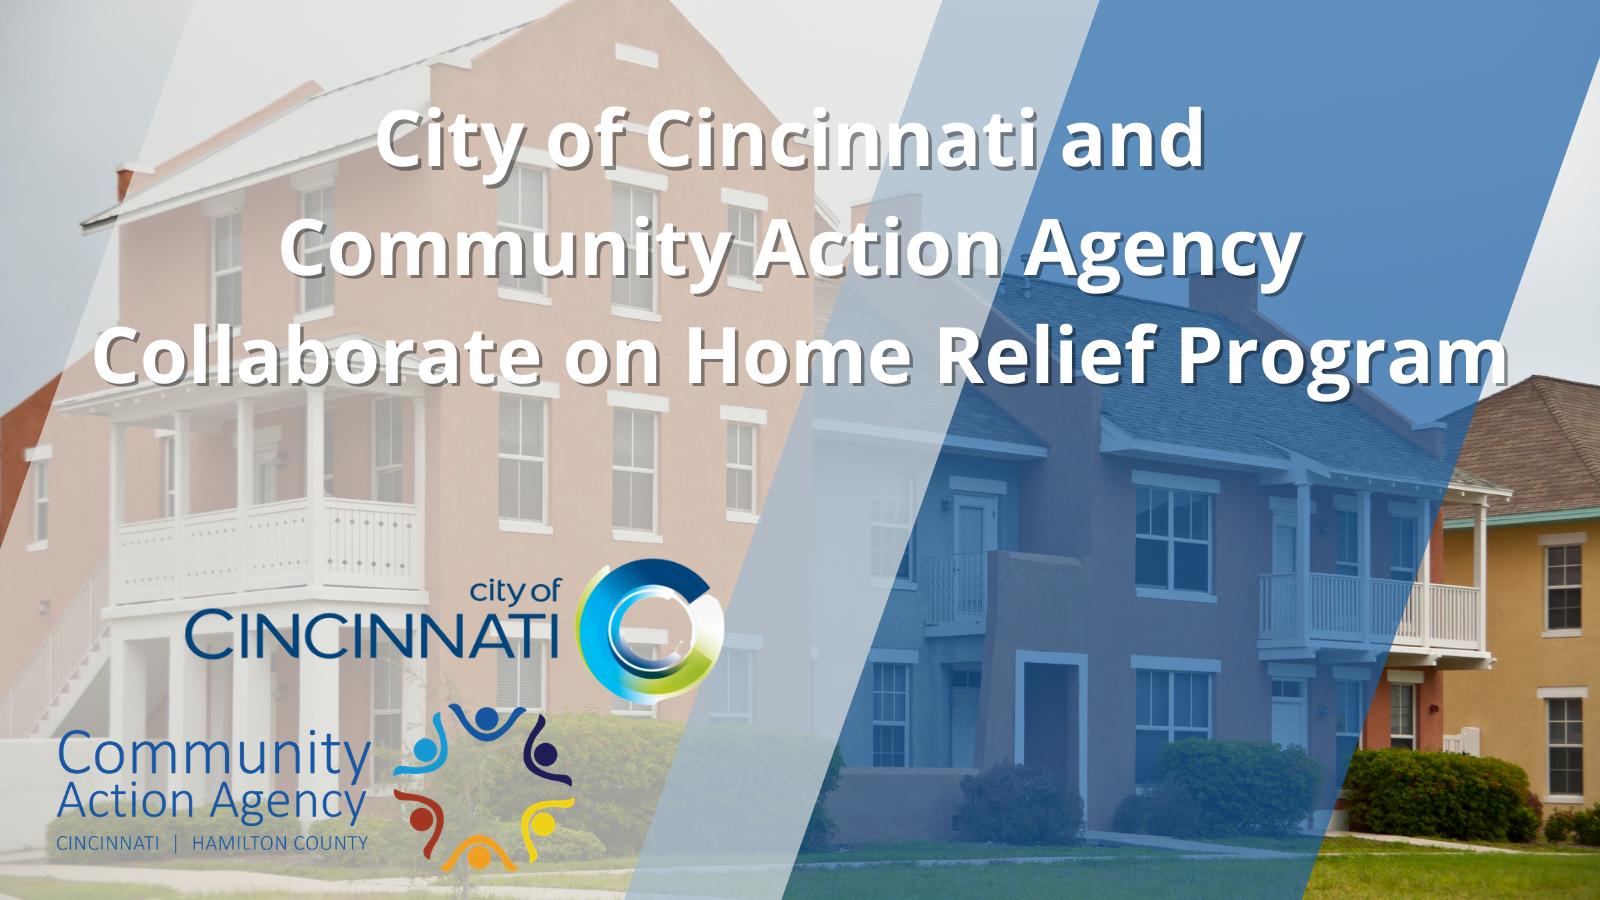 The City of Cincinnati is proud to announce a new partnership with the Community Action Agency (CAA) intended to assist households who have fallen behind on rent and utility bills due to the COVID-19 pandemic.